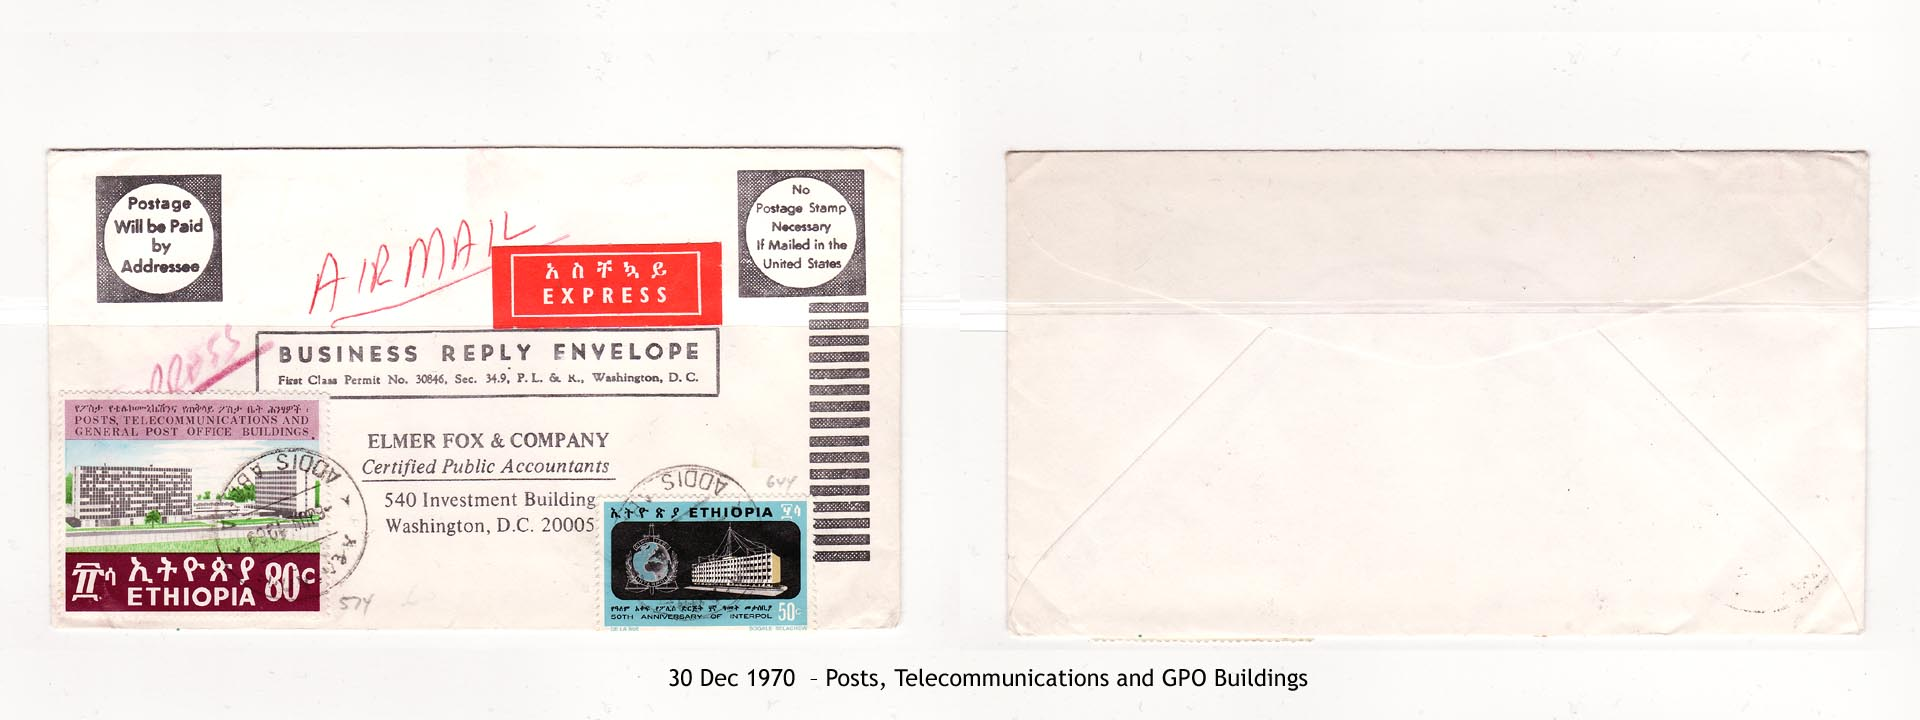 19701230 – Posts, Telecommunications and GPO Buildings